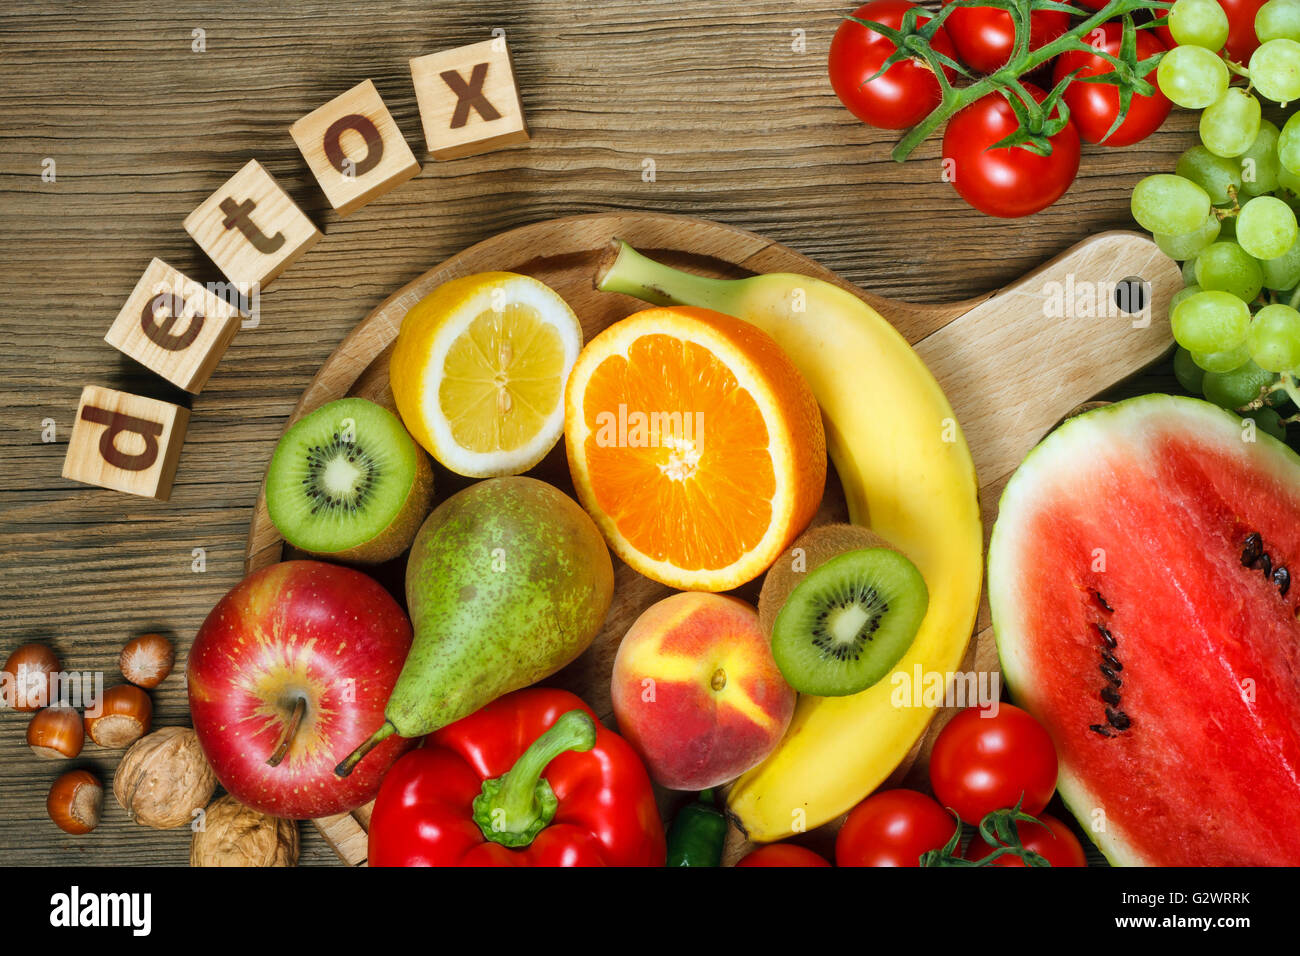 Detox. Vitamins in fruits and vegetables. Natural products rich in vitamins as oranges, lemons, red pepper, kiwi,tomatoes, - Stock Image